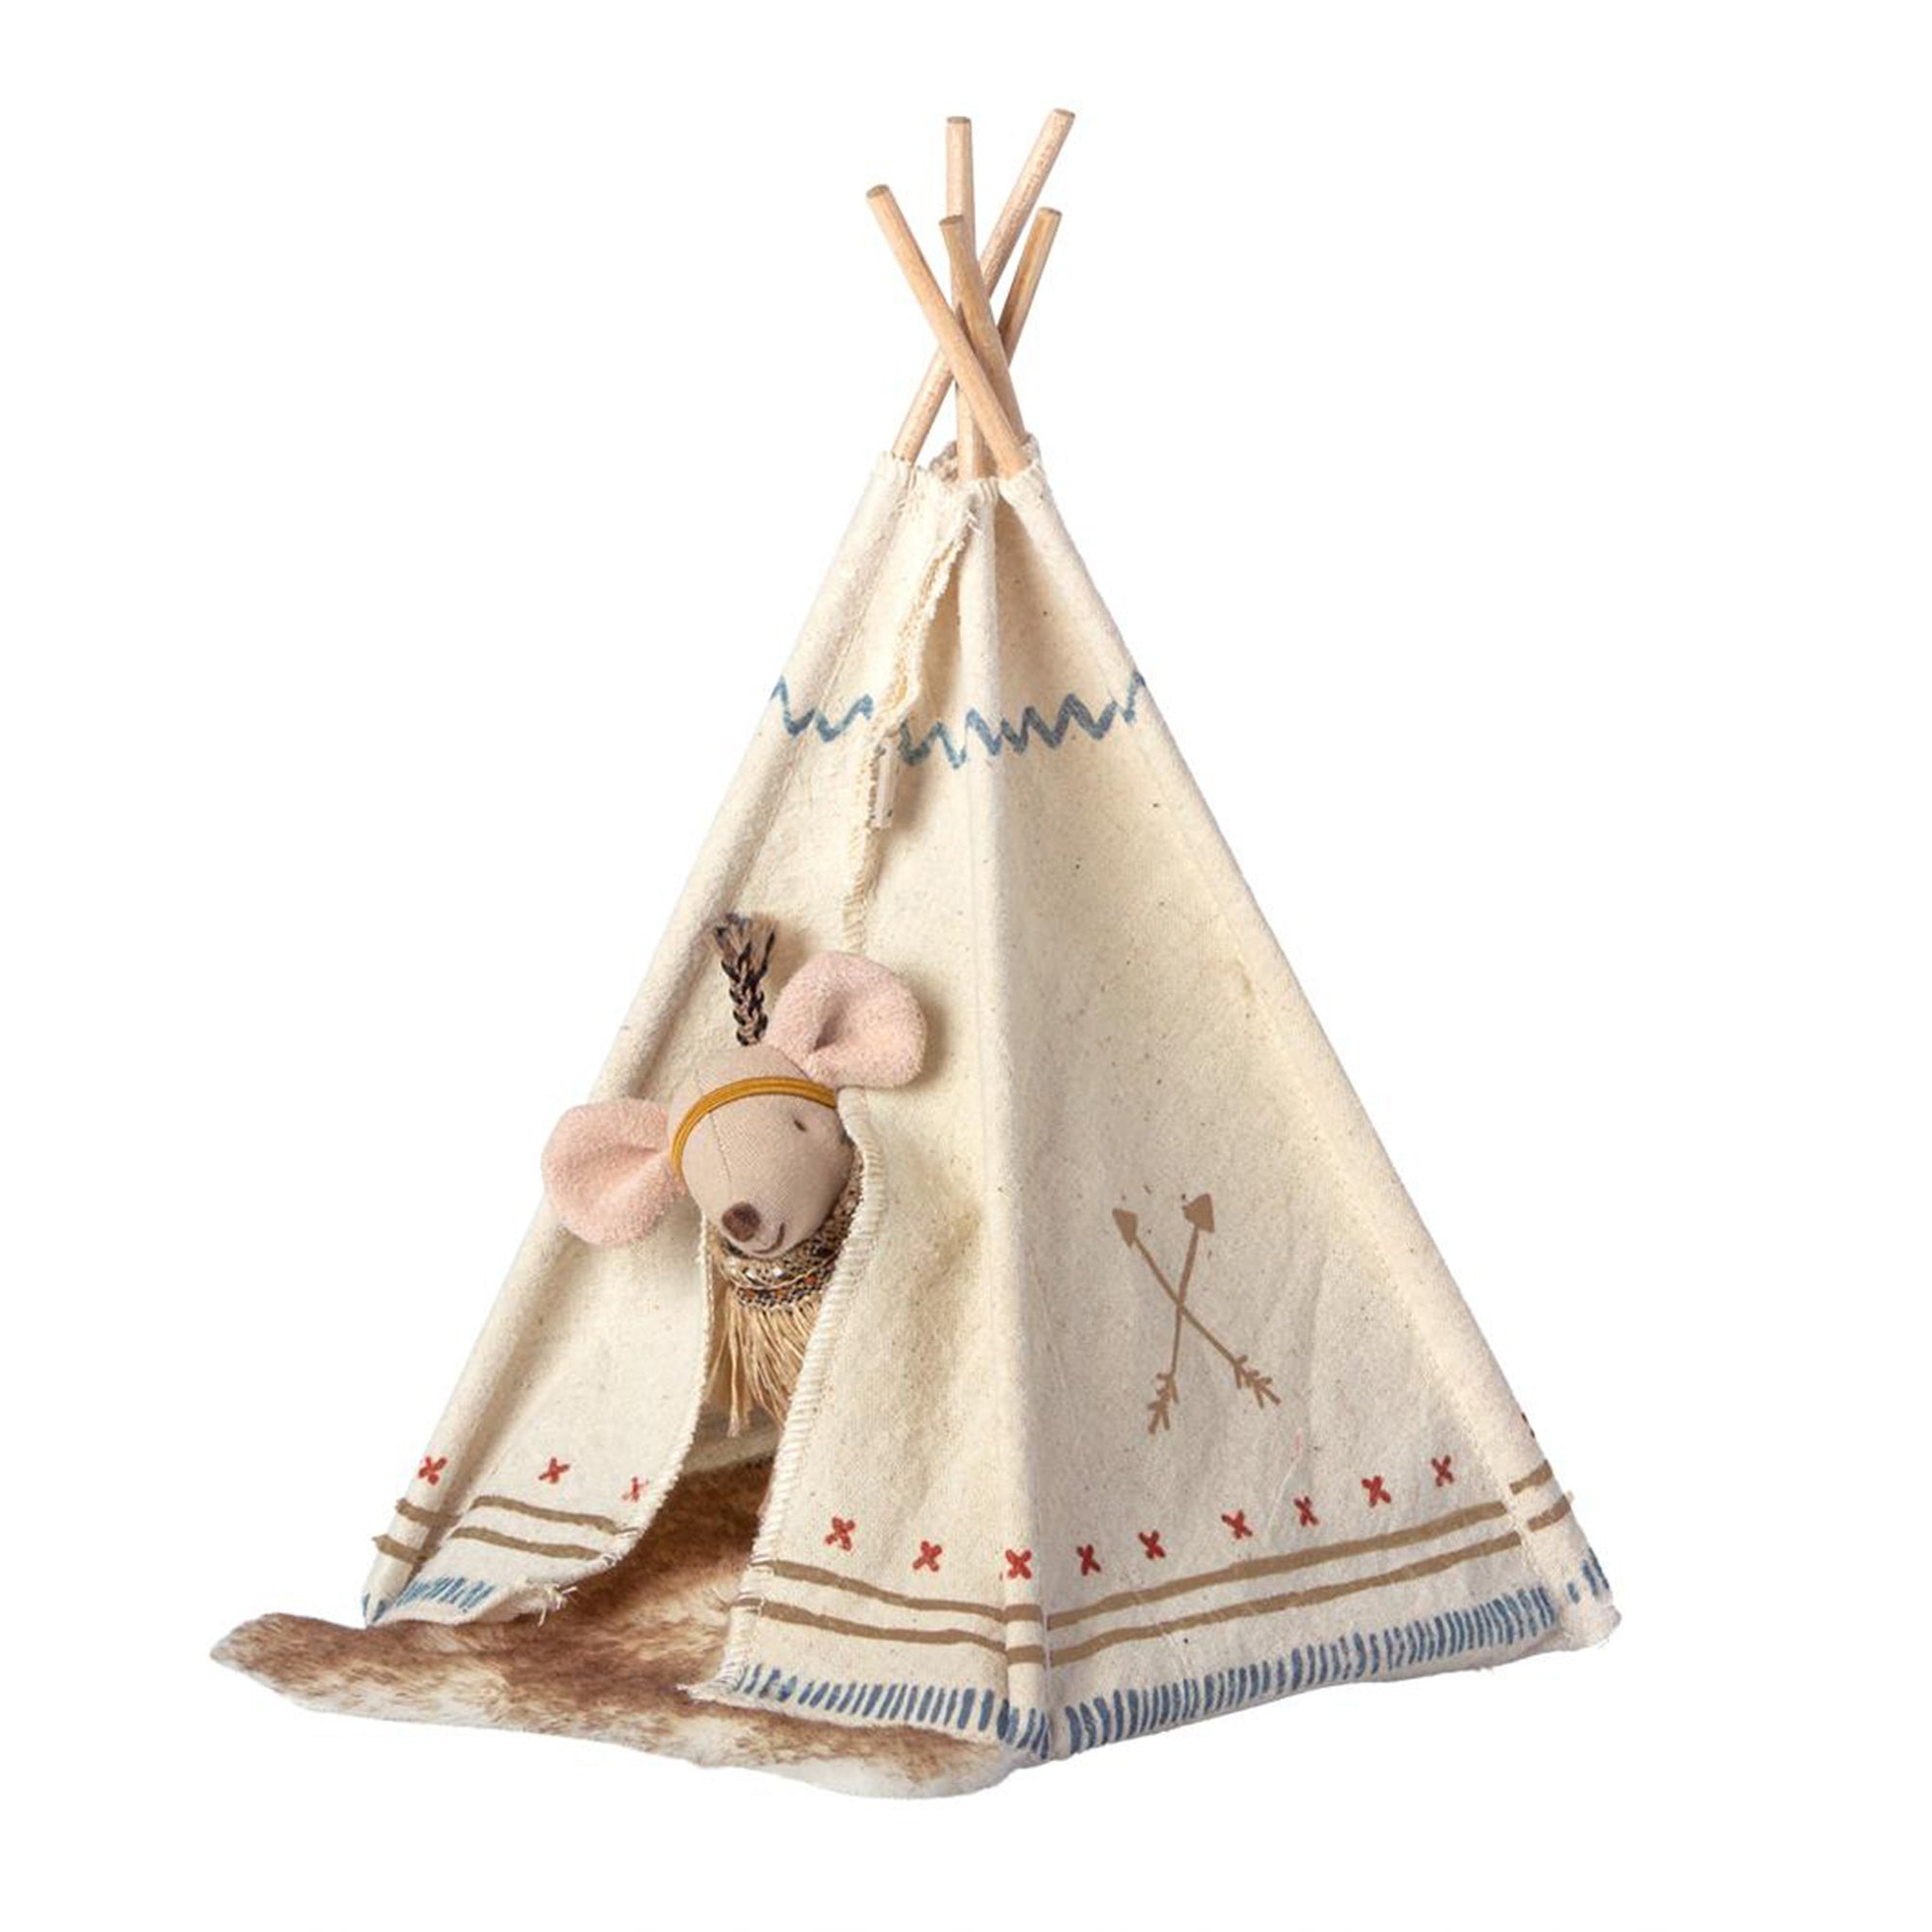 Maileg Little Feather Tent with Little Sister Mouse - Scandi Minimal